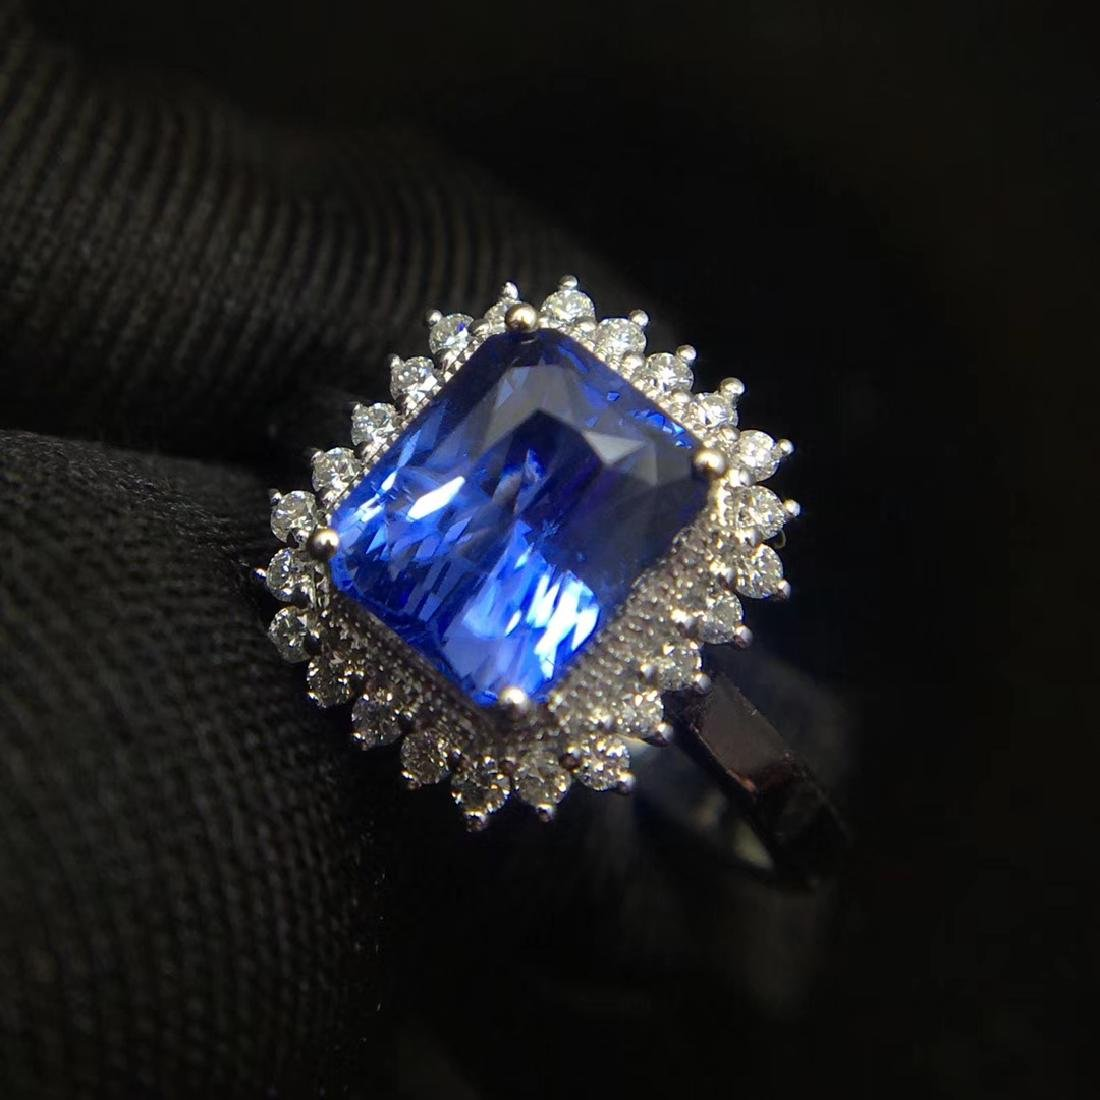 2.52ct Sapphire Ring in 18kt White Gold - 5